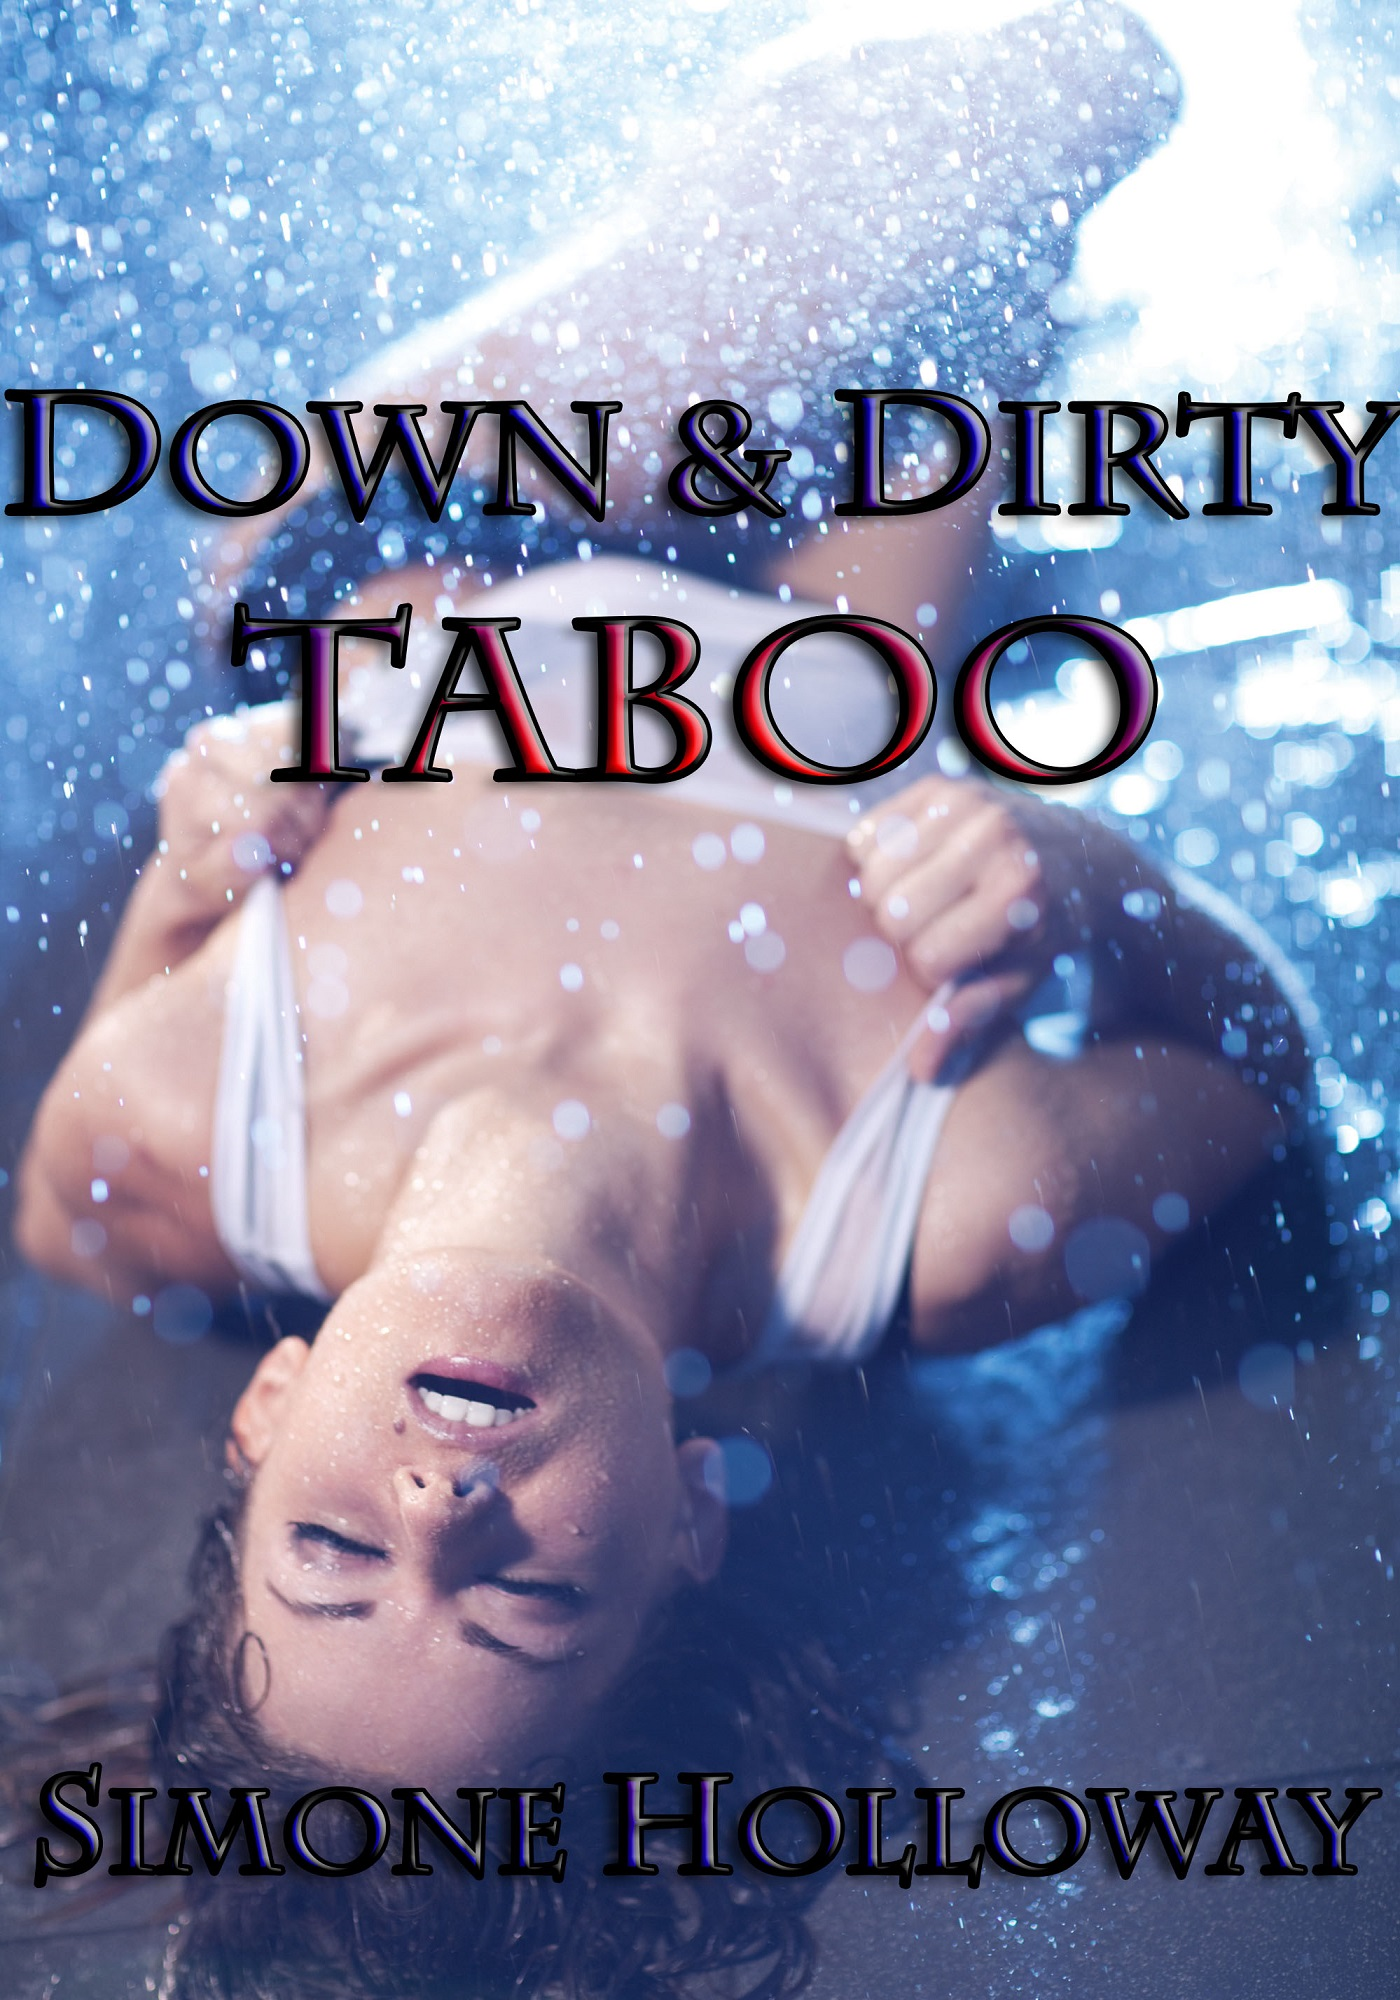 Down & dirty taboo (forbidden erotica)